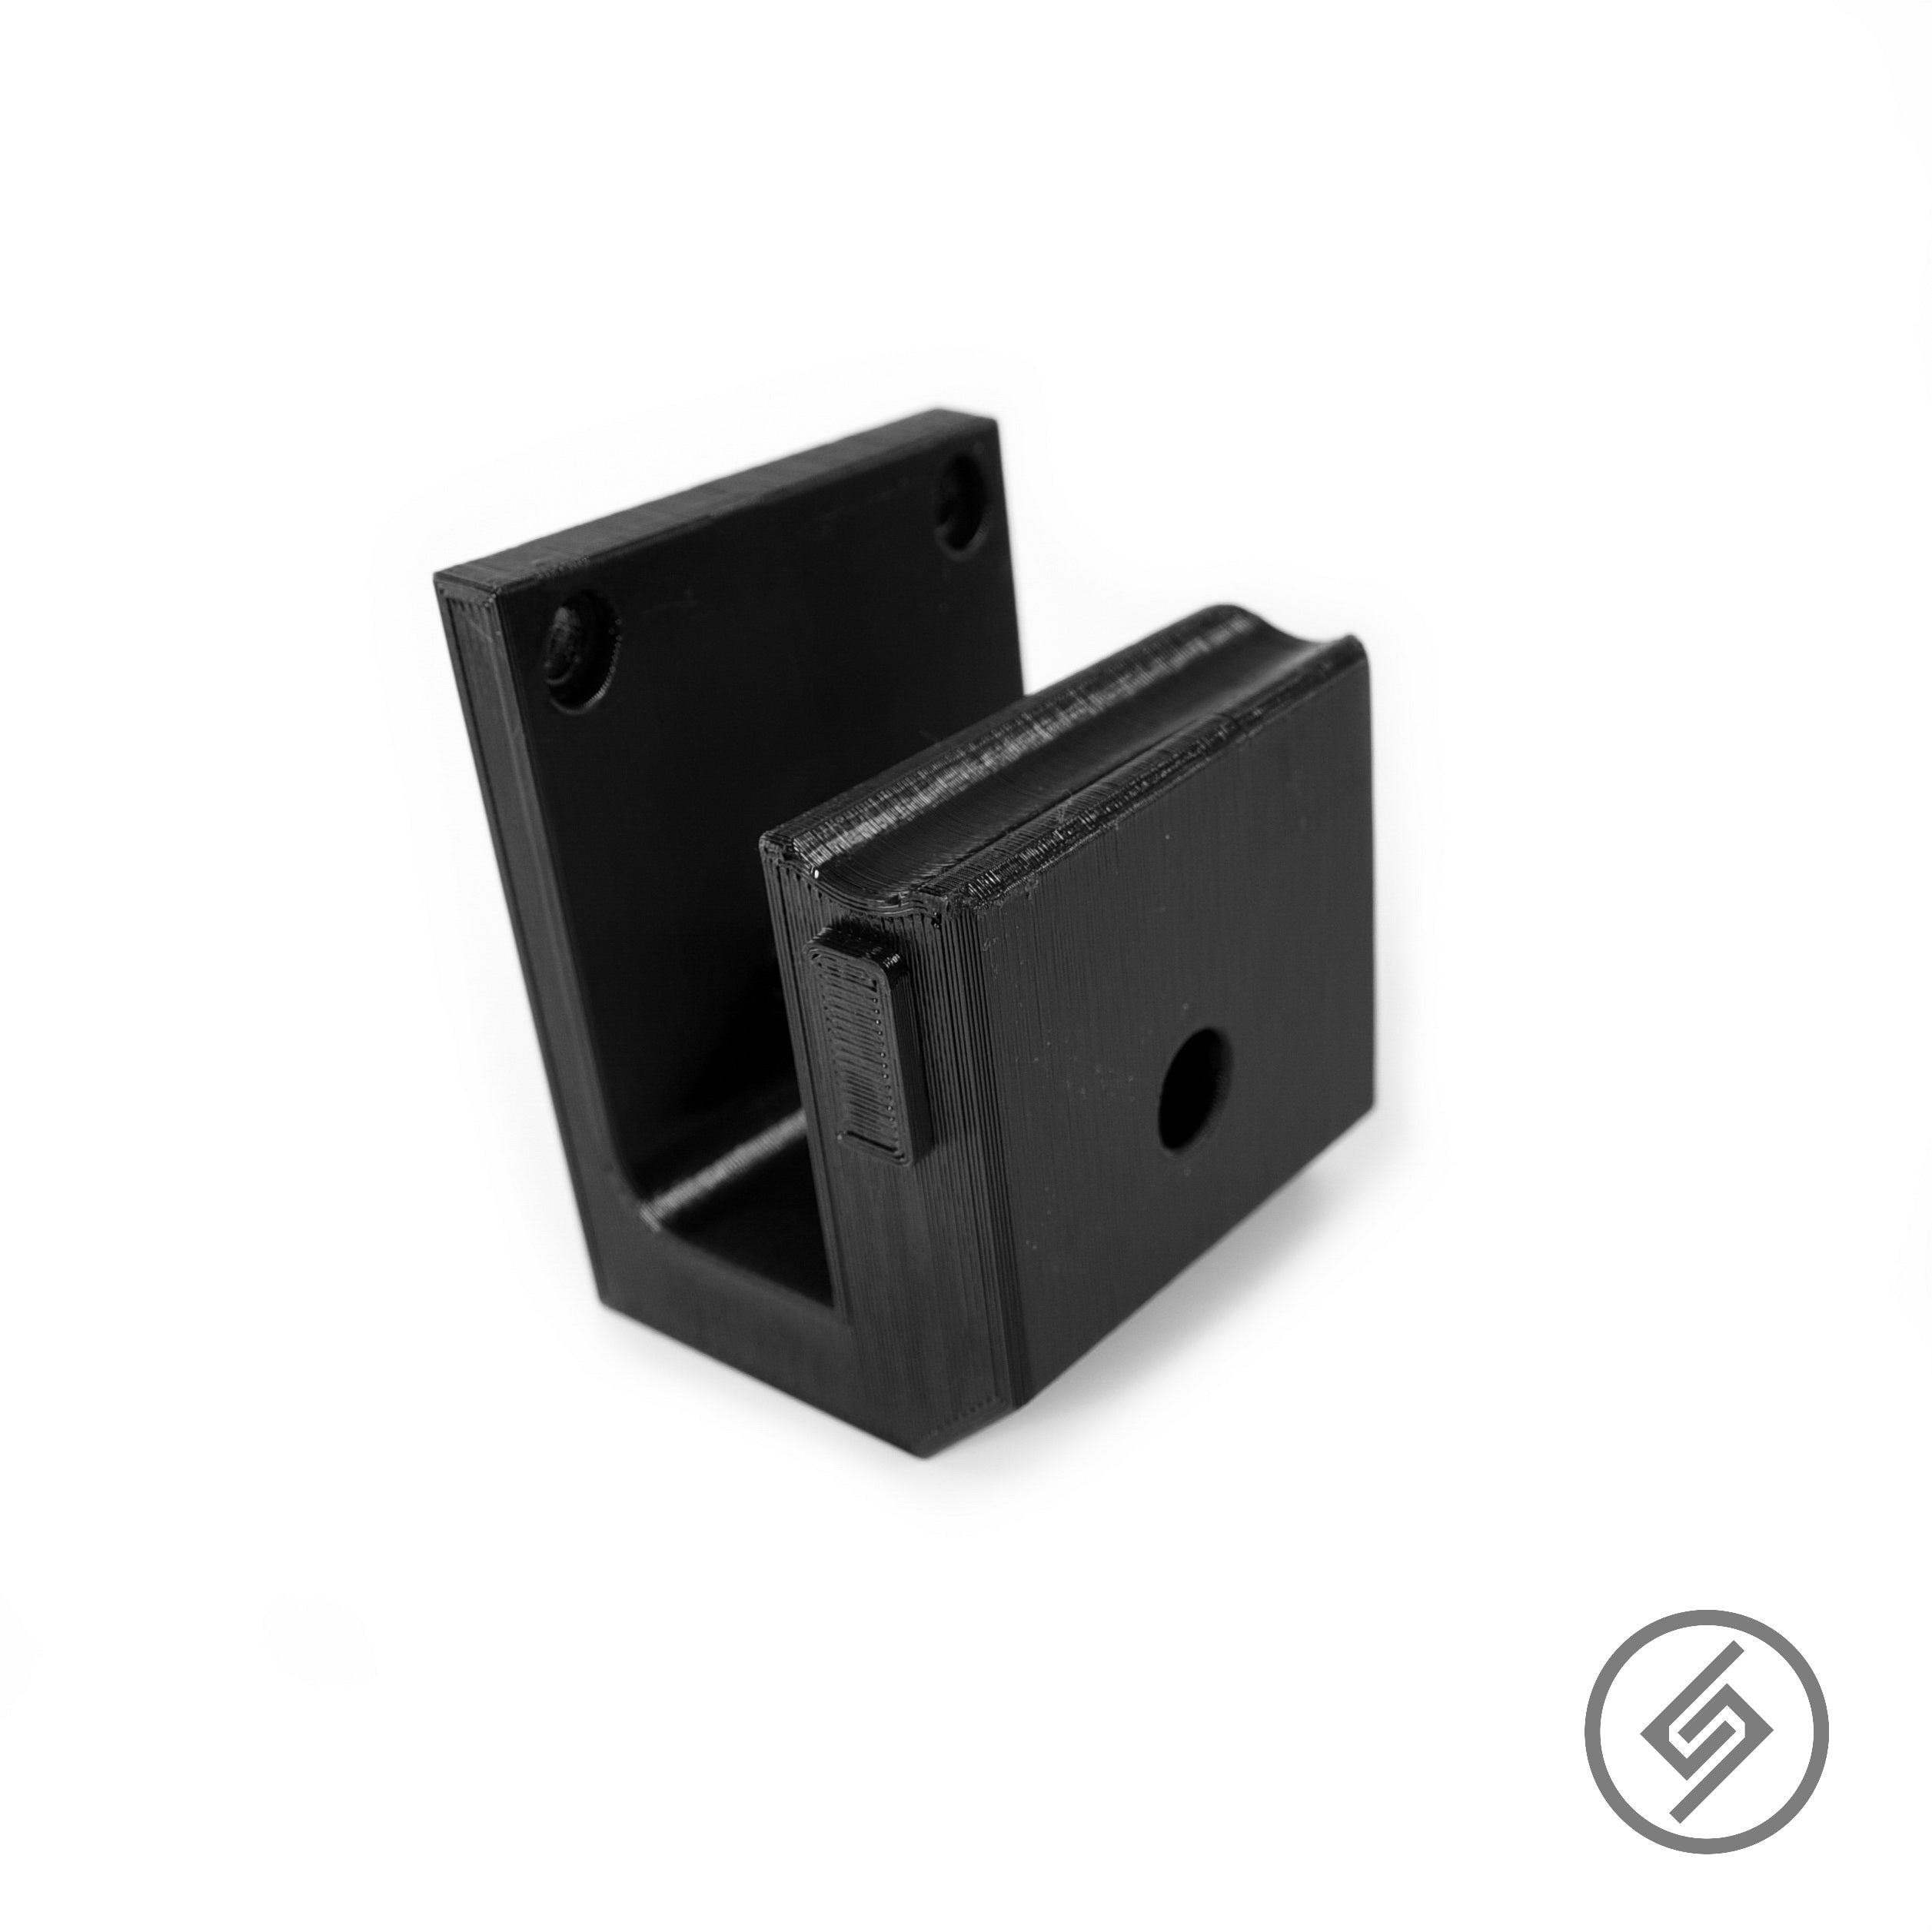 M14 M1a Springfield Rifle Wall Mount Display Holder Adapter Organization Gun Safe Spartan Mount